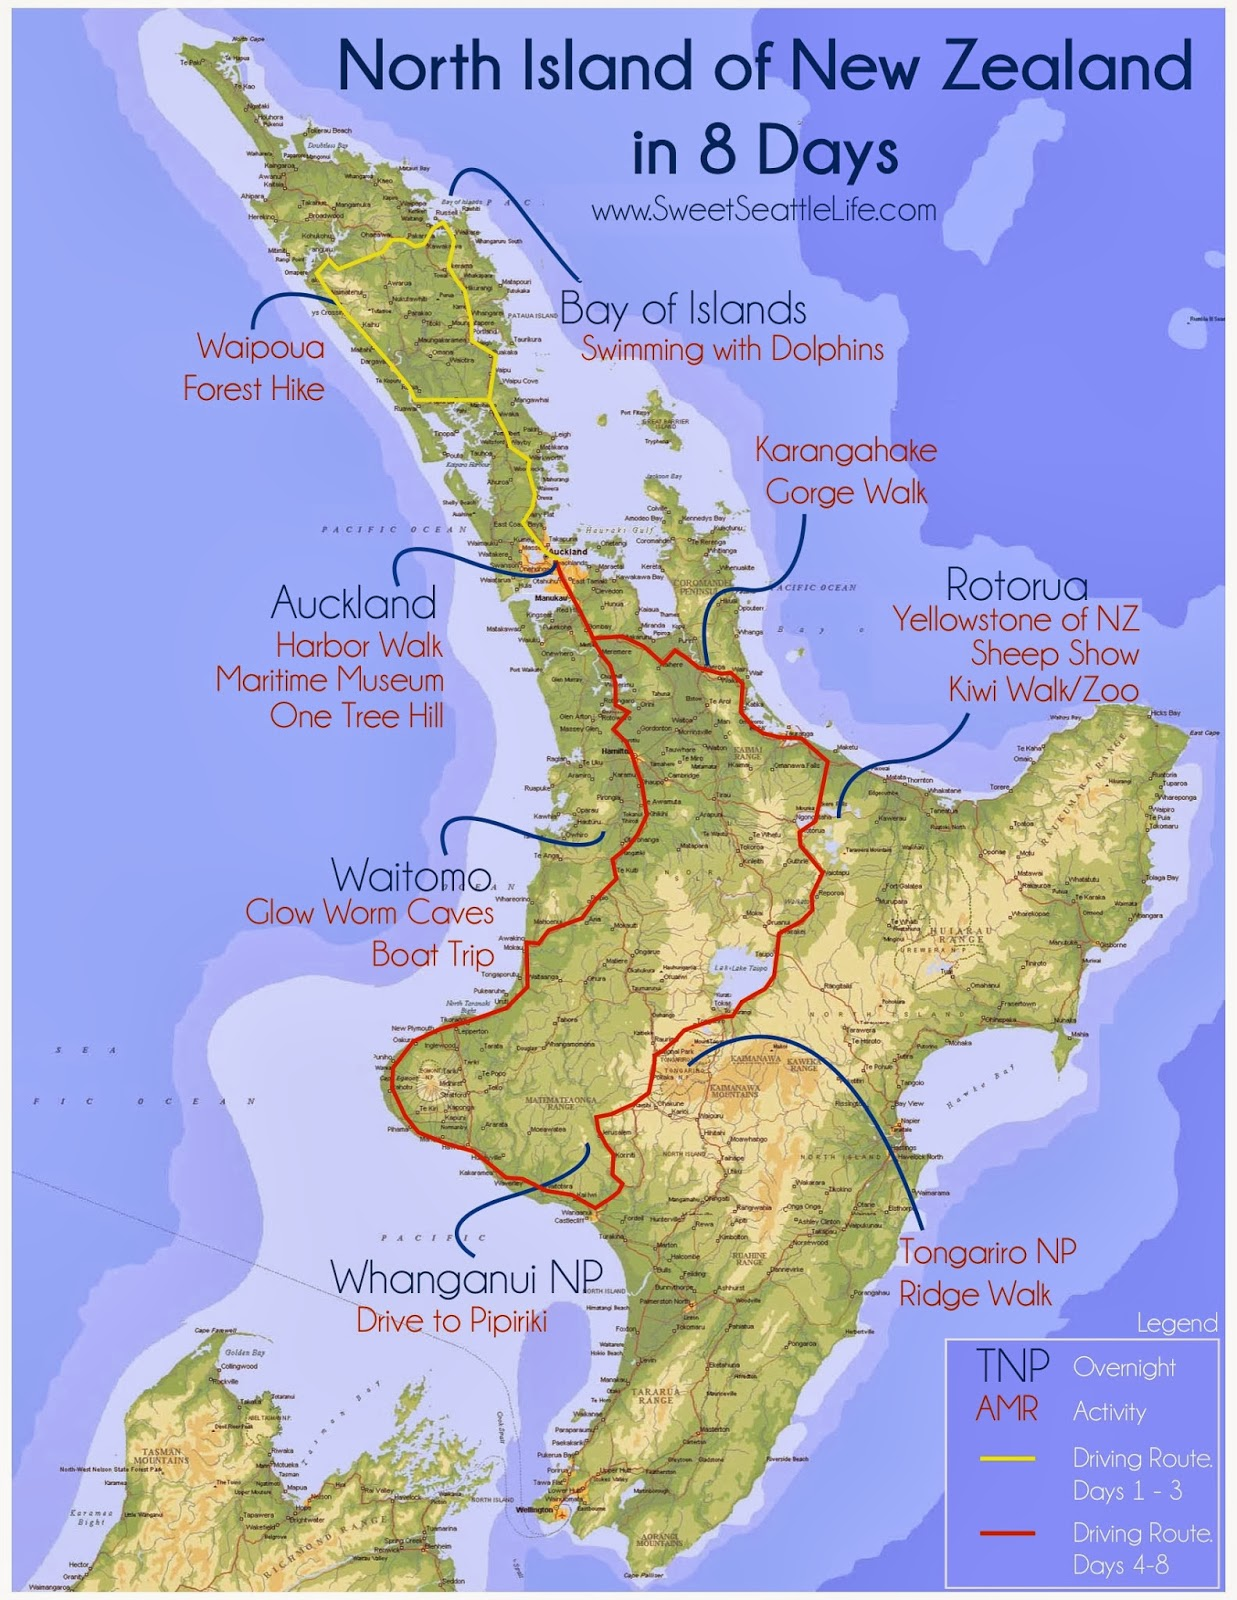 New Zealand Route Map.Chris And Sonja The Sweet Seattle Life Trips New Zealand Route